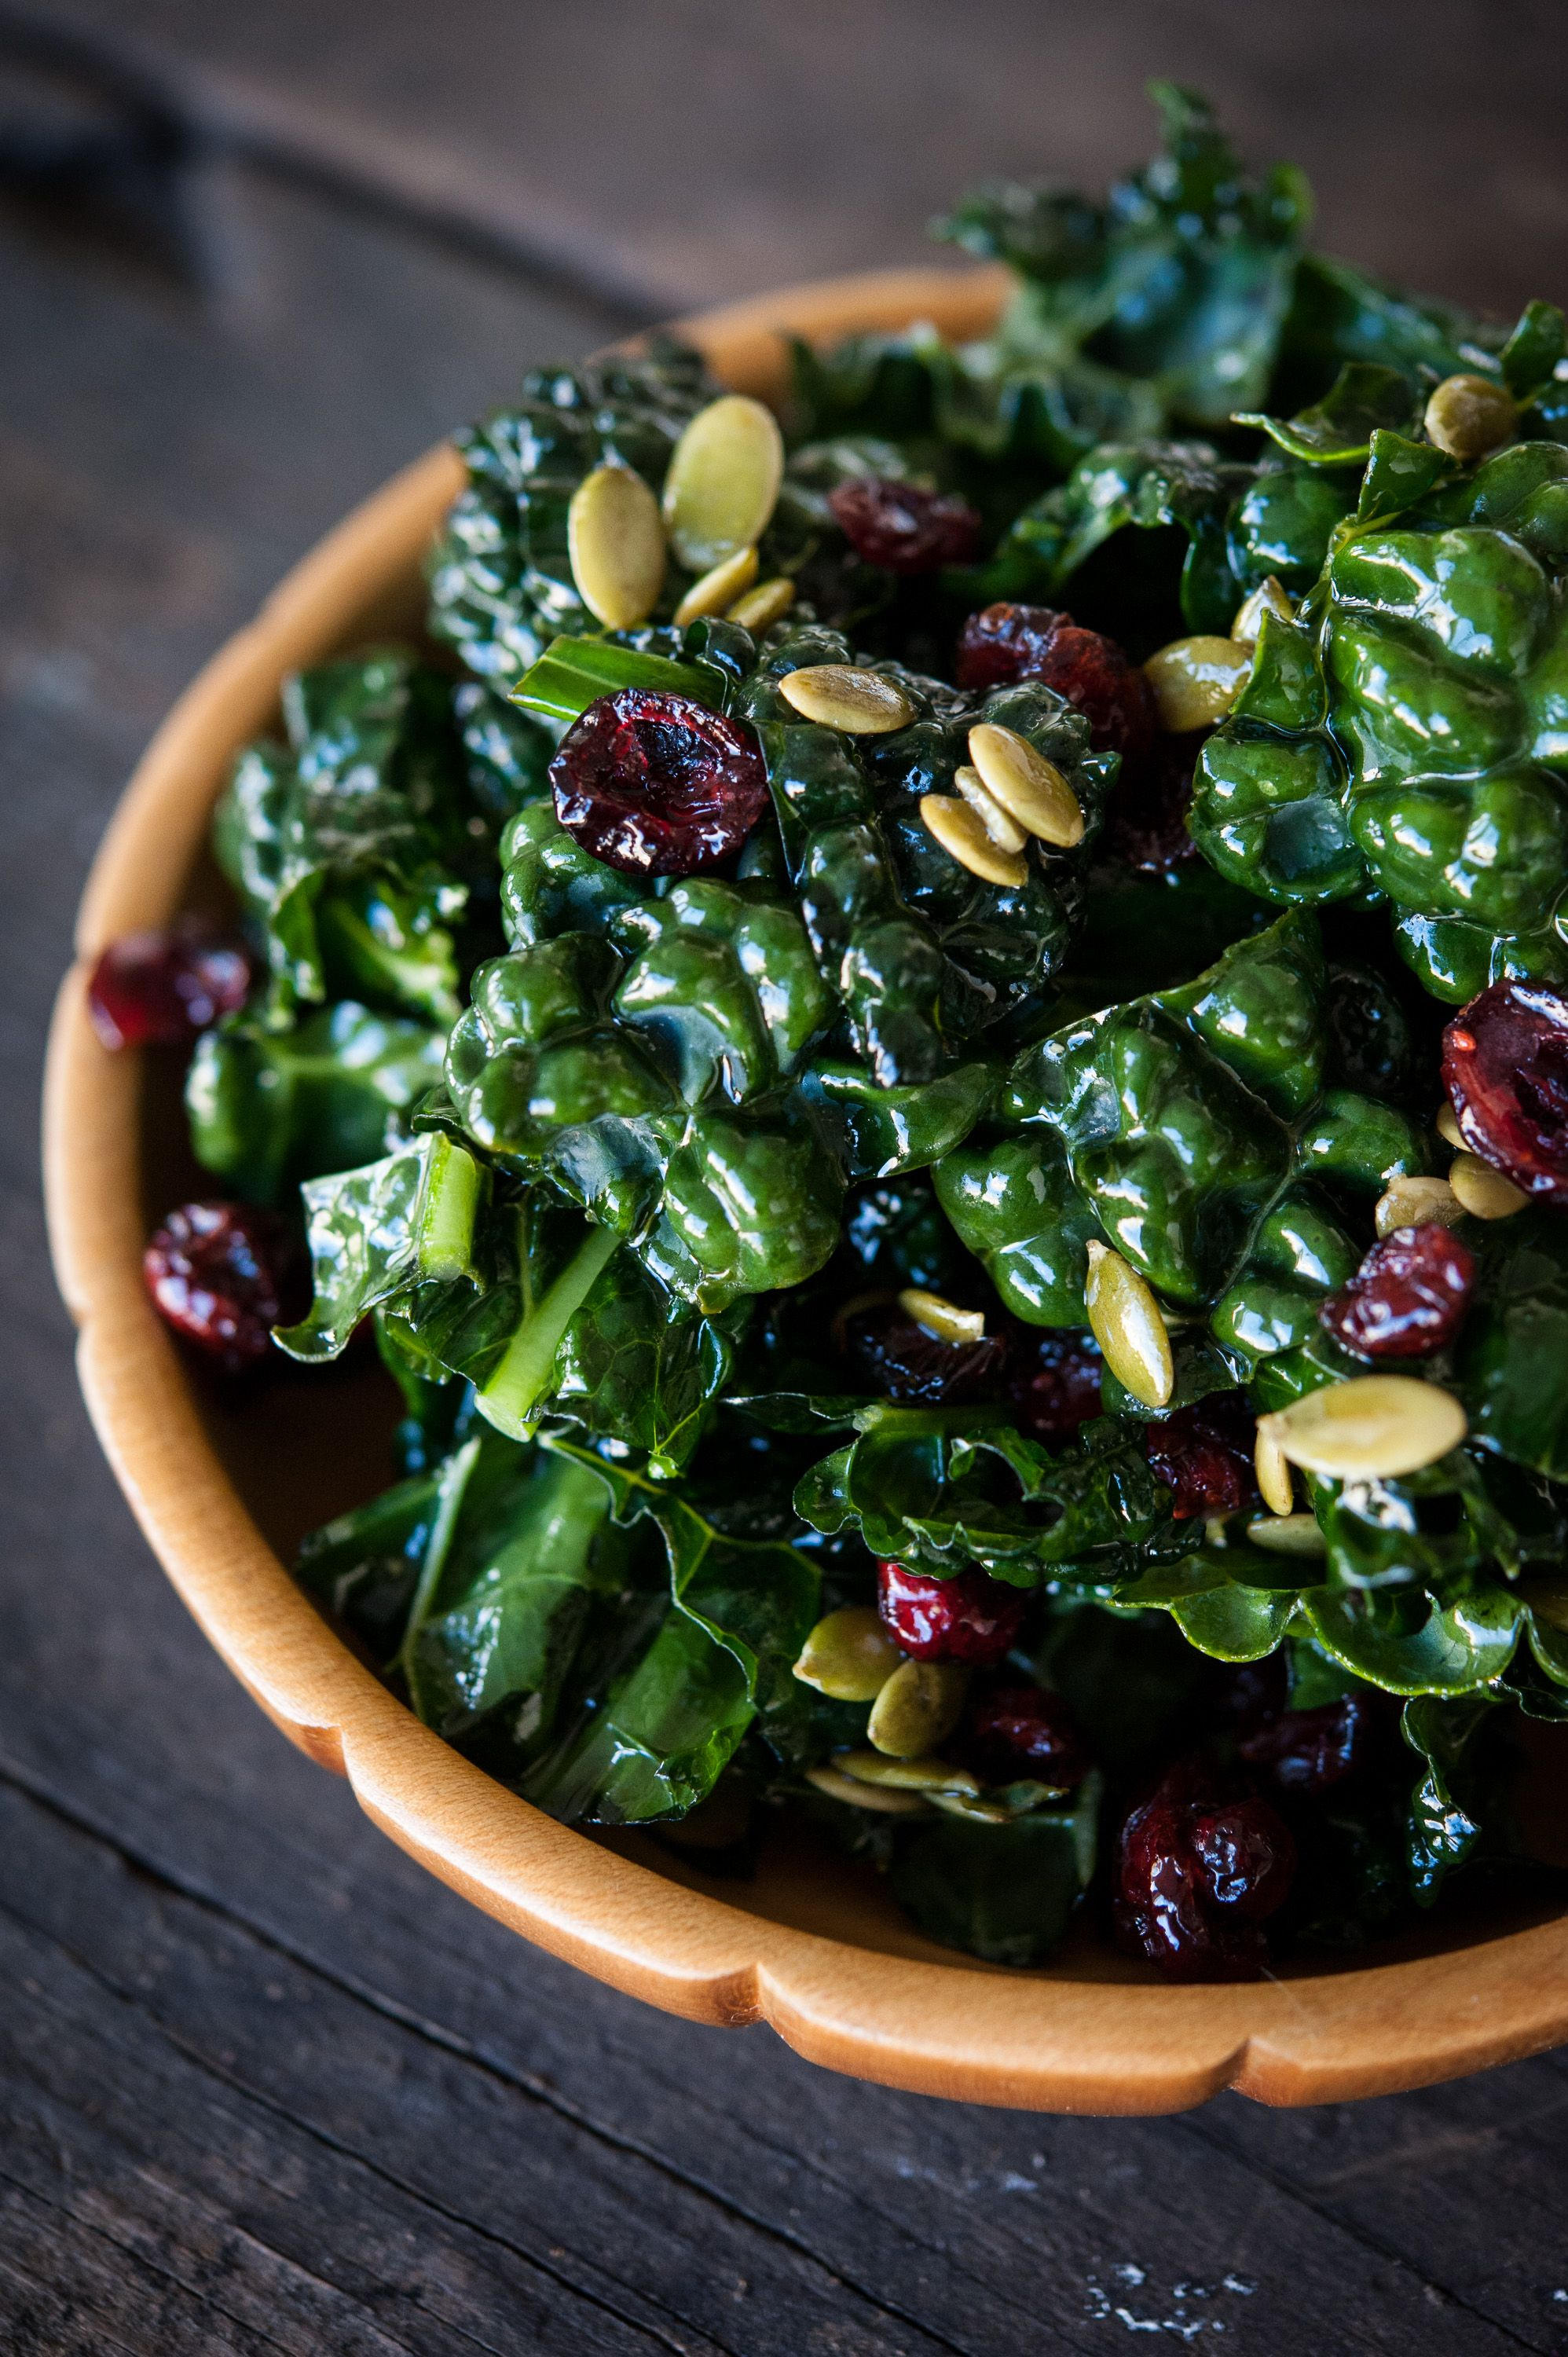 Kale Salad with Cranberries and Pumpkin Seeds recipe